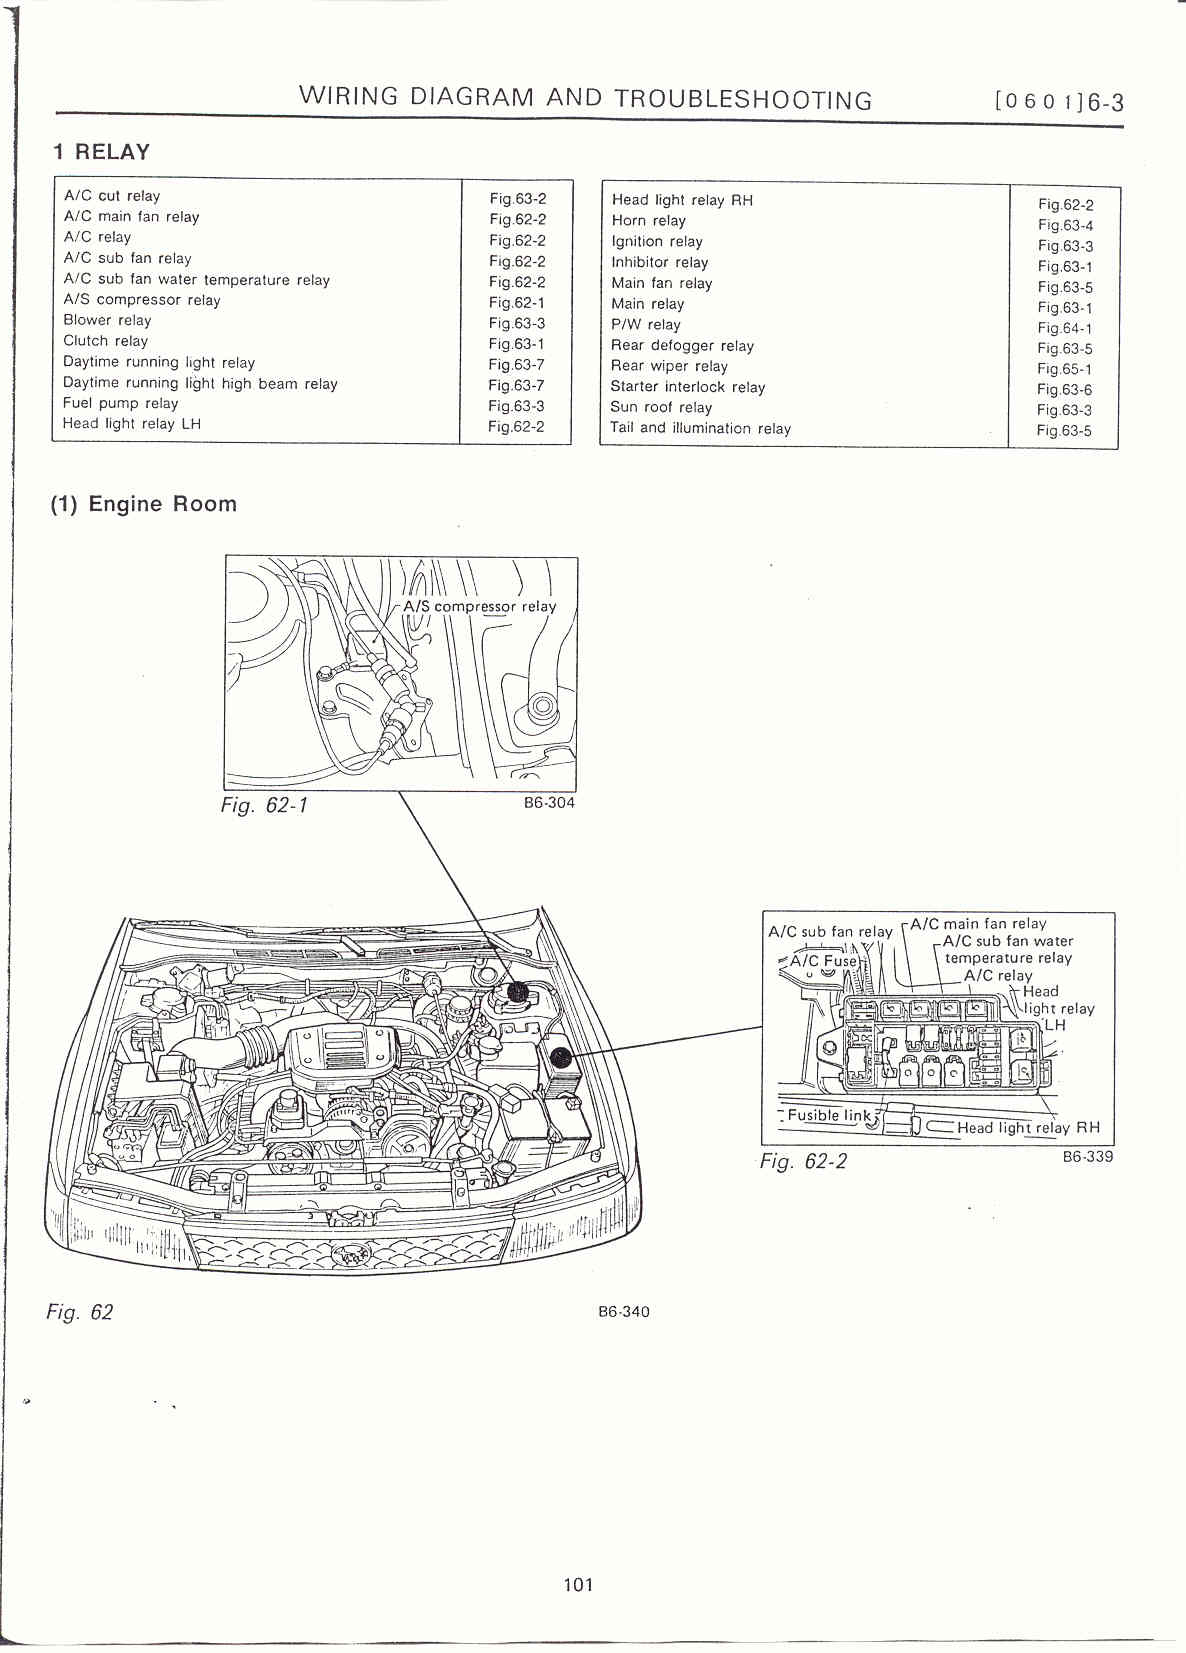 1981 Dodge Ram Wiring Diagram Great Design Of 2012 2500 1997 Subaru Fuse Box U2022 For Free 2006